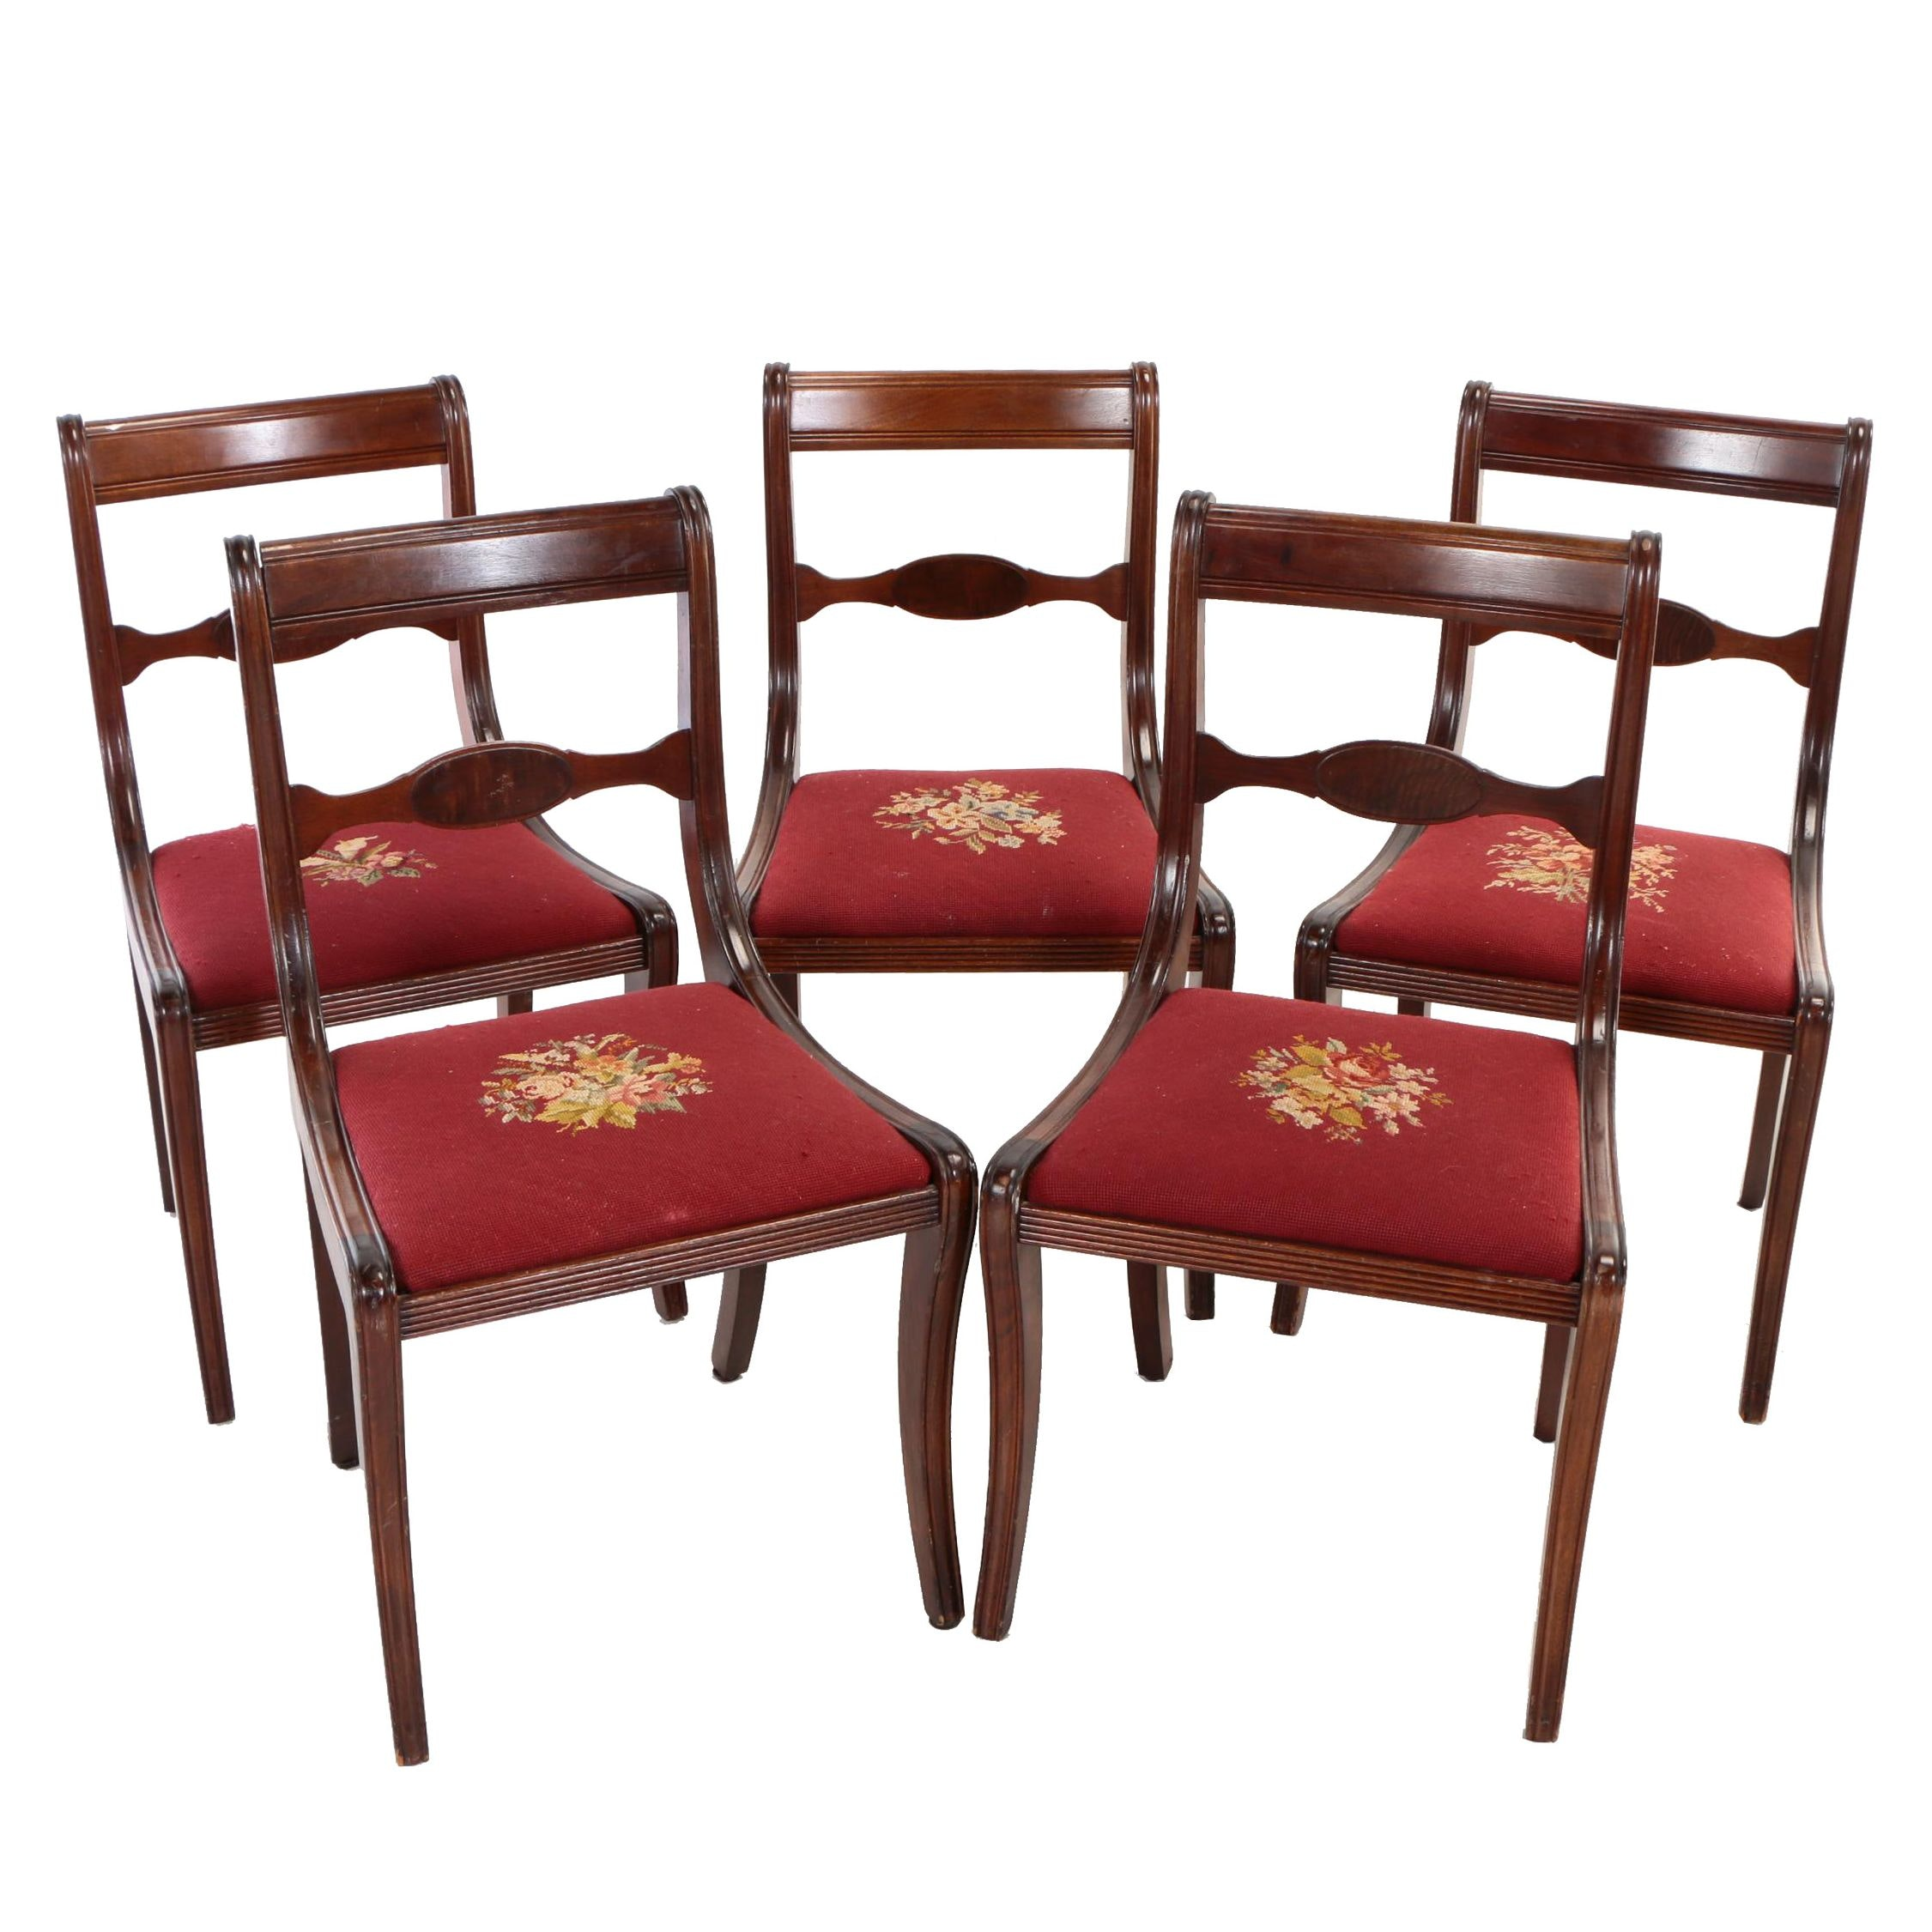 Five Grand Ledge Chair Co., Mahogany and Figured Walnut Dining Side Chairs